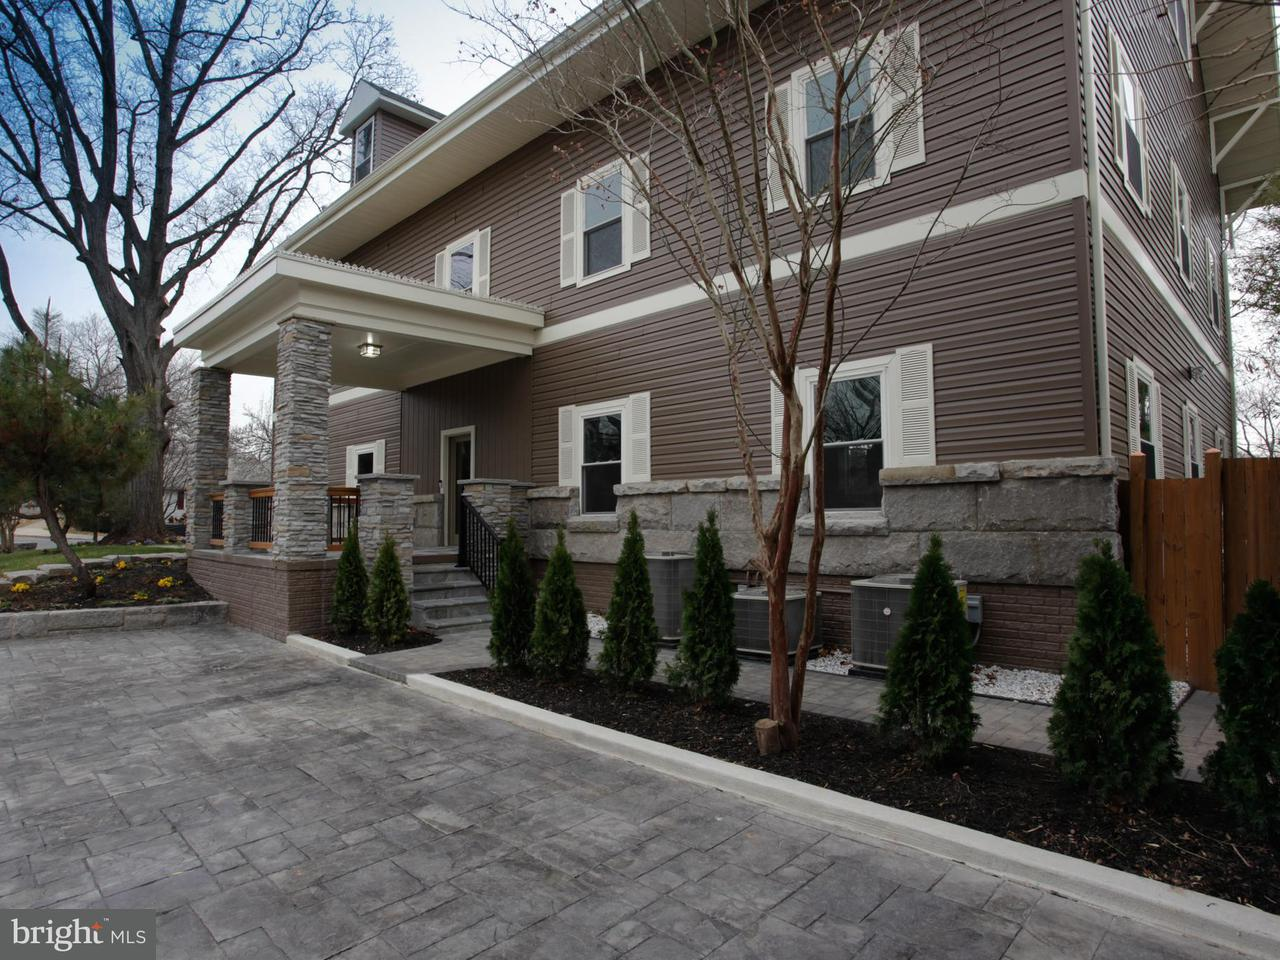 Single Family Home for Sale at 6430 27th St N 6430 27th St N Arlington, Virginia 22207 United States